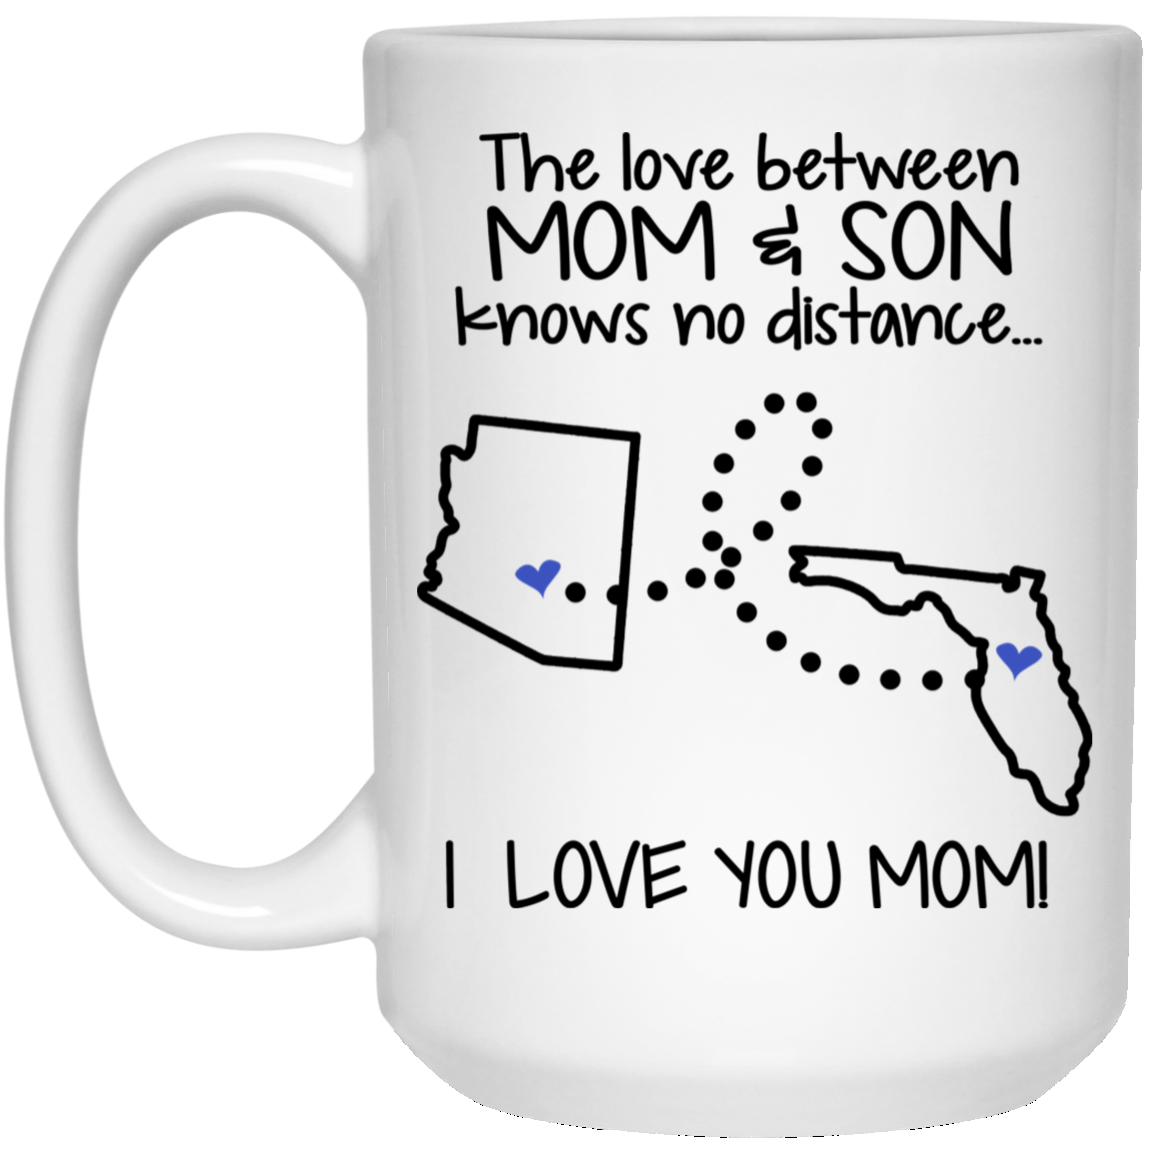 FLORIDA ARIZONA THE LOVE BETWEEN MOM AND SON